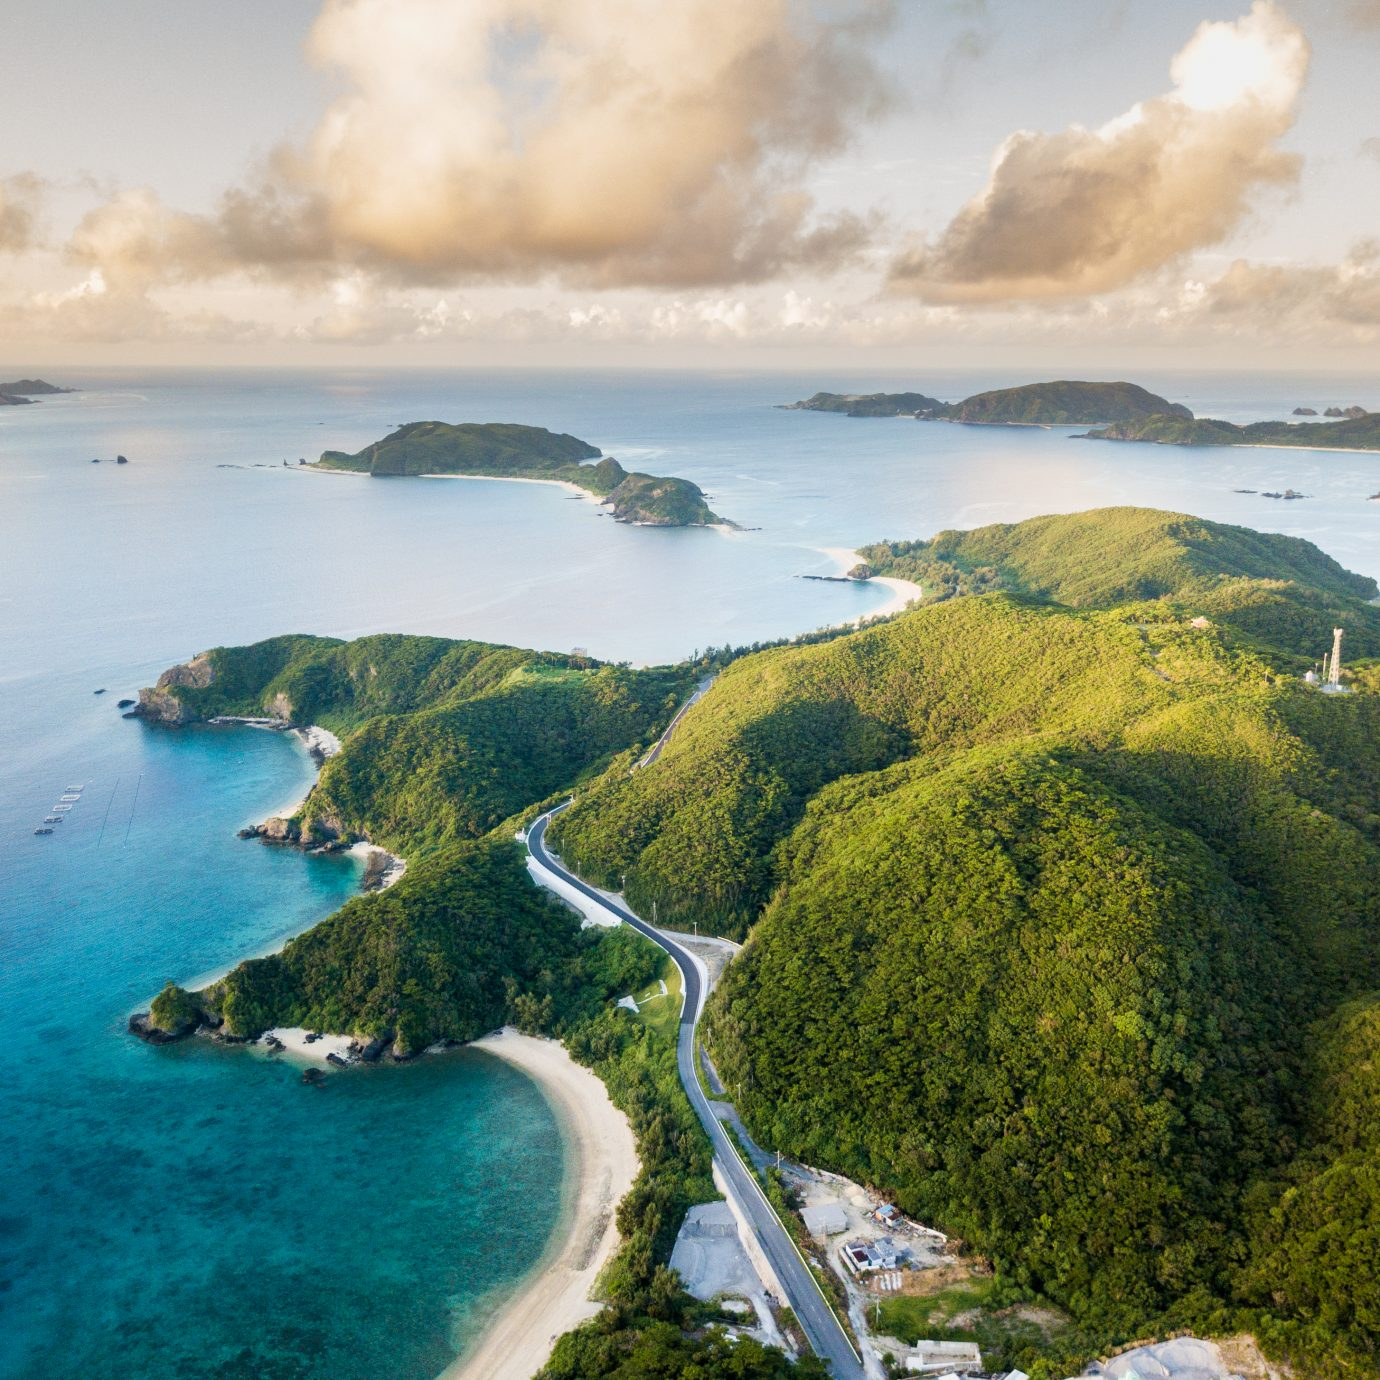 An aerial view over islands with beautiful water and reef surrounding them. From the Kerama island chain in Okinawa, Japan.